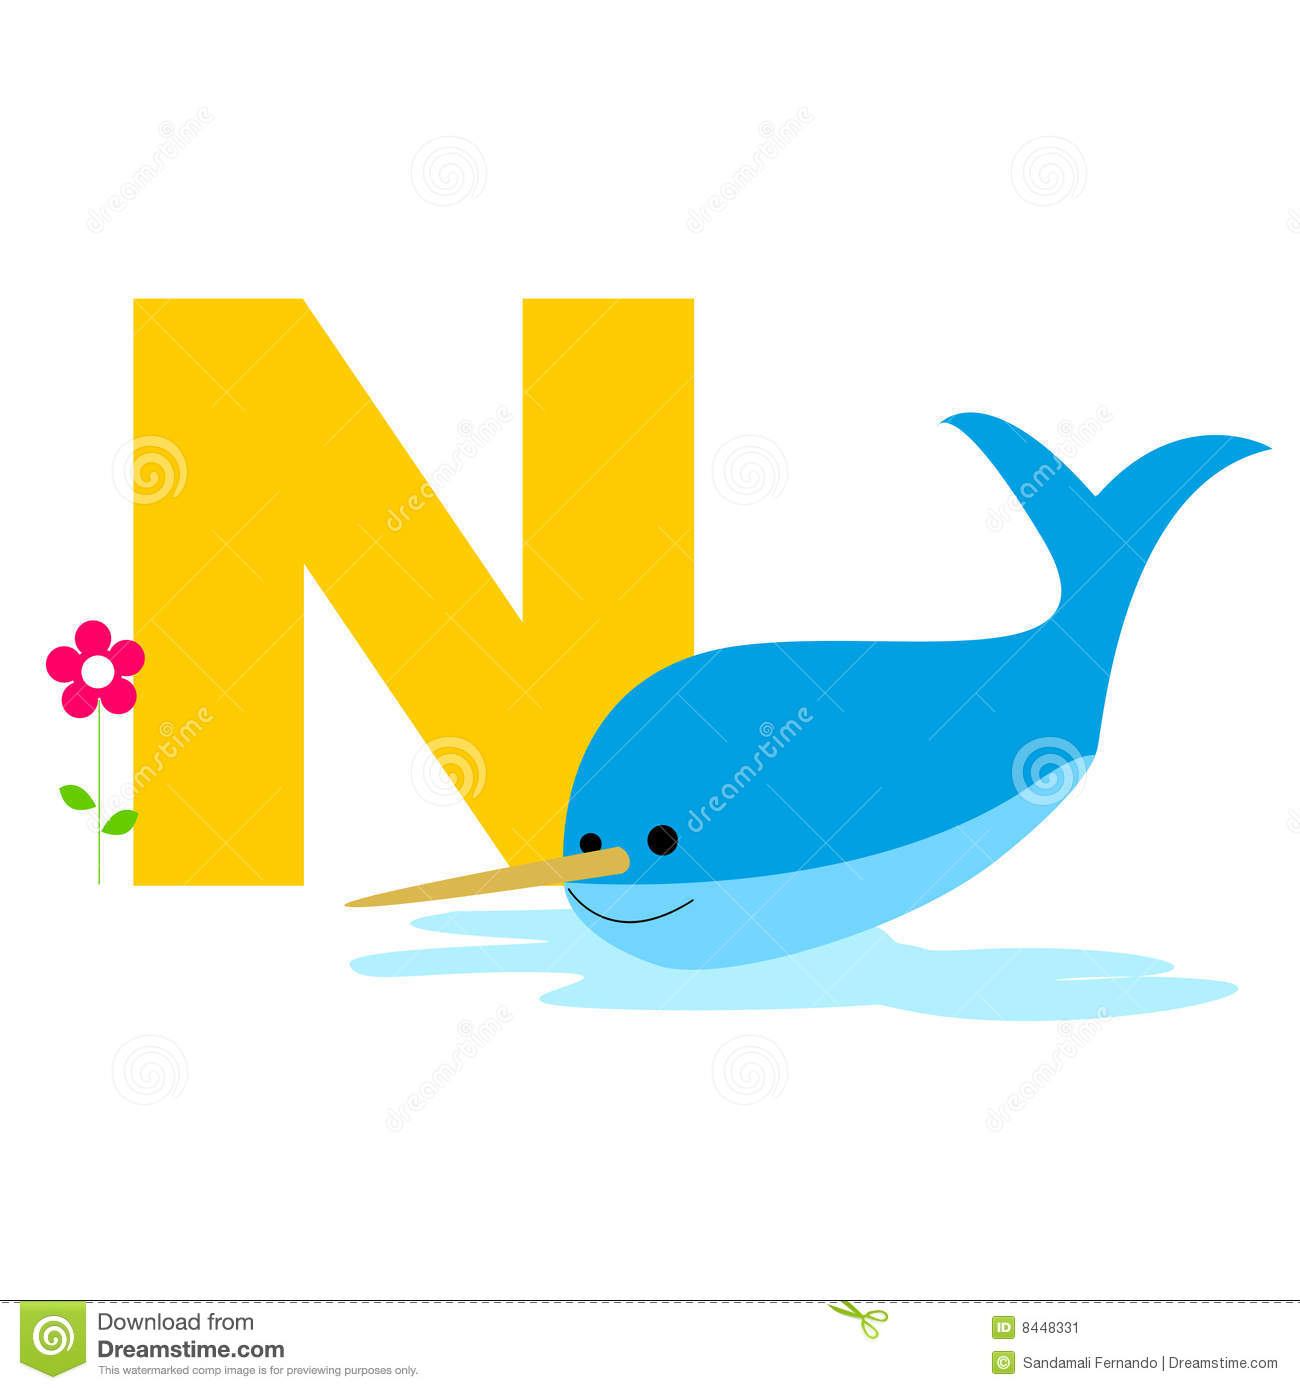 Image of: Newt Animal Alphabet Dreamstimecom Animal Alphabet Stock Vector Illustration Of Child 8448331